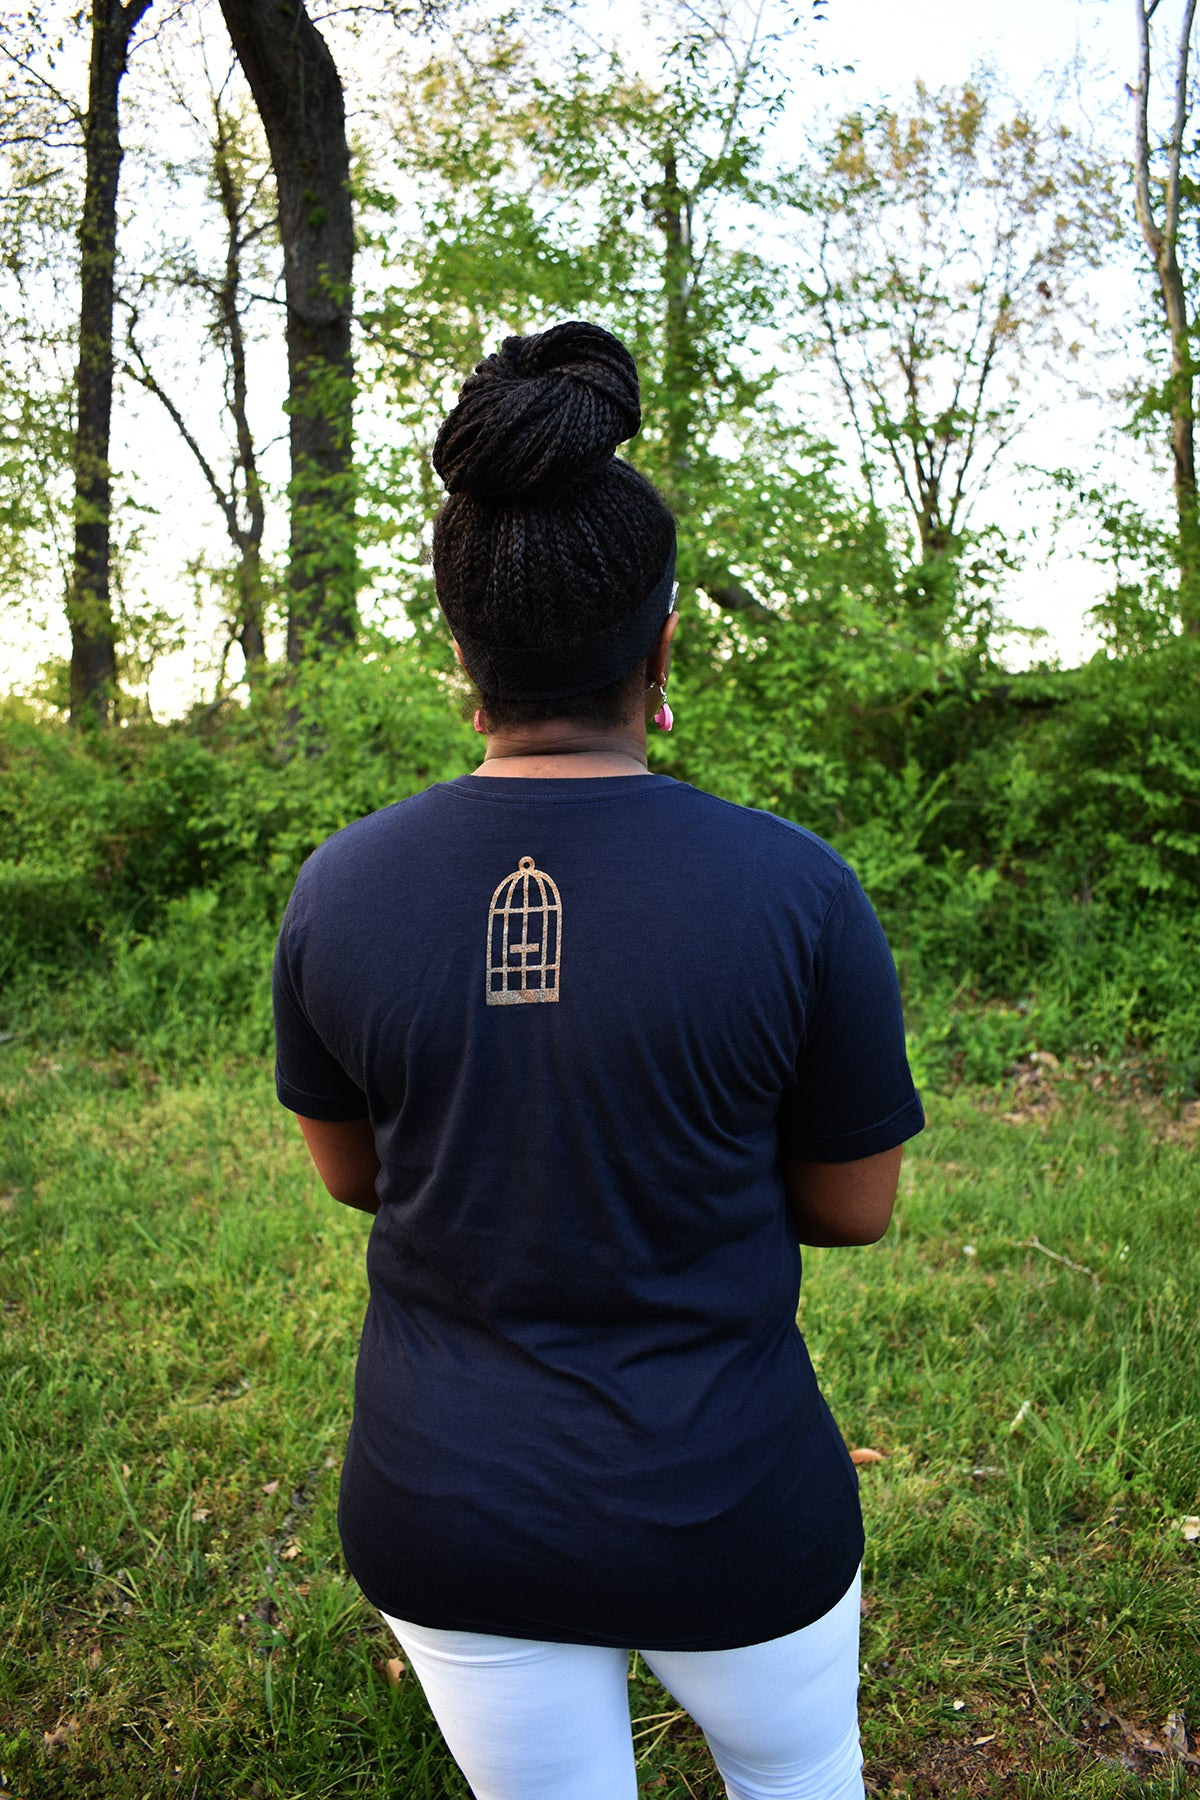 Female model wearing v-neck navy t-shirt with a small, No Egrets Birdcage logo in gold on the back between the shoulders.